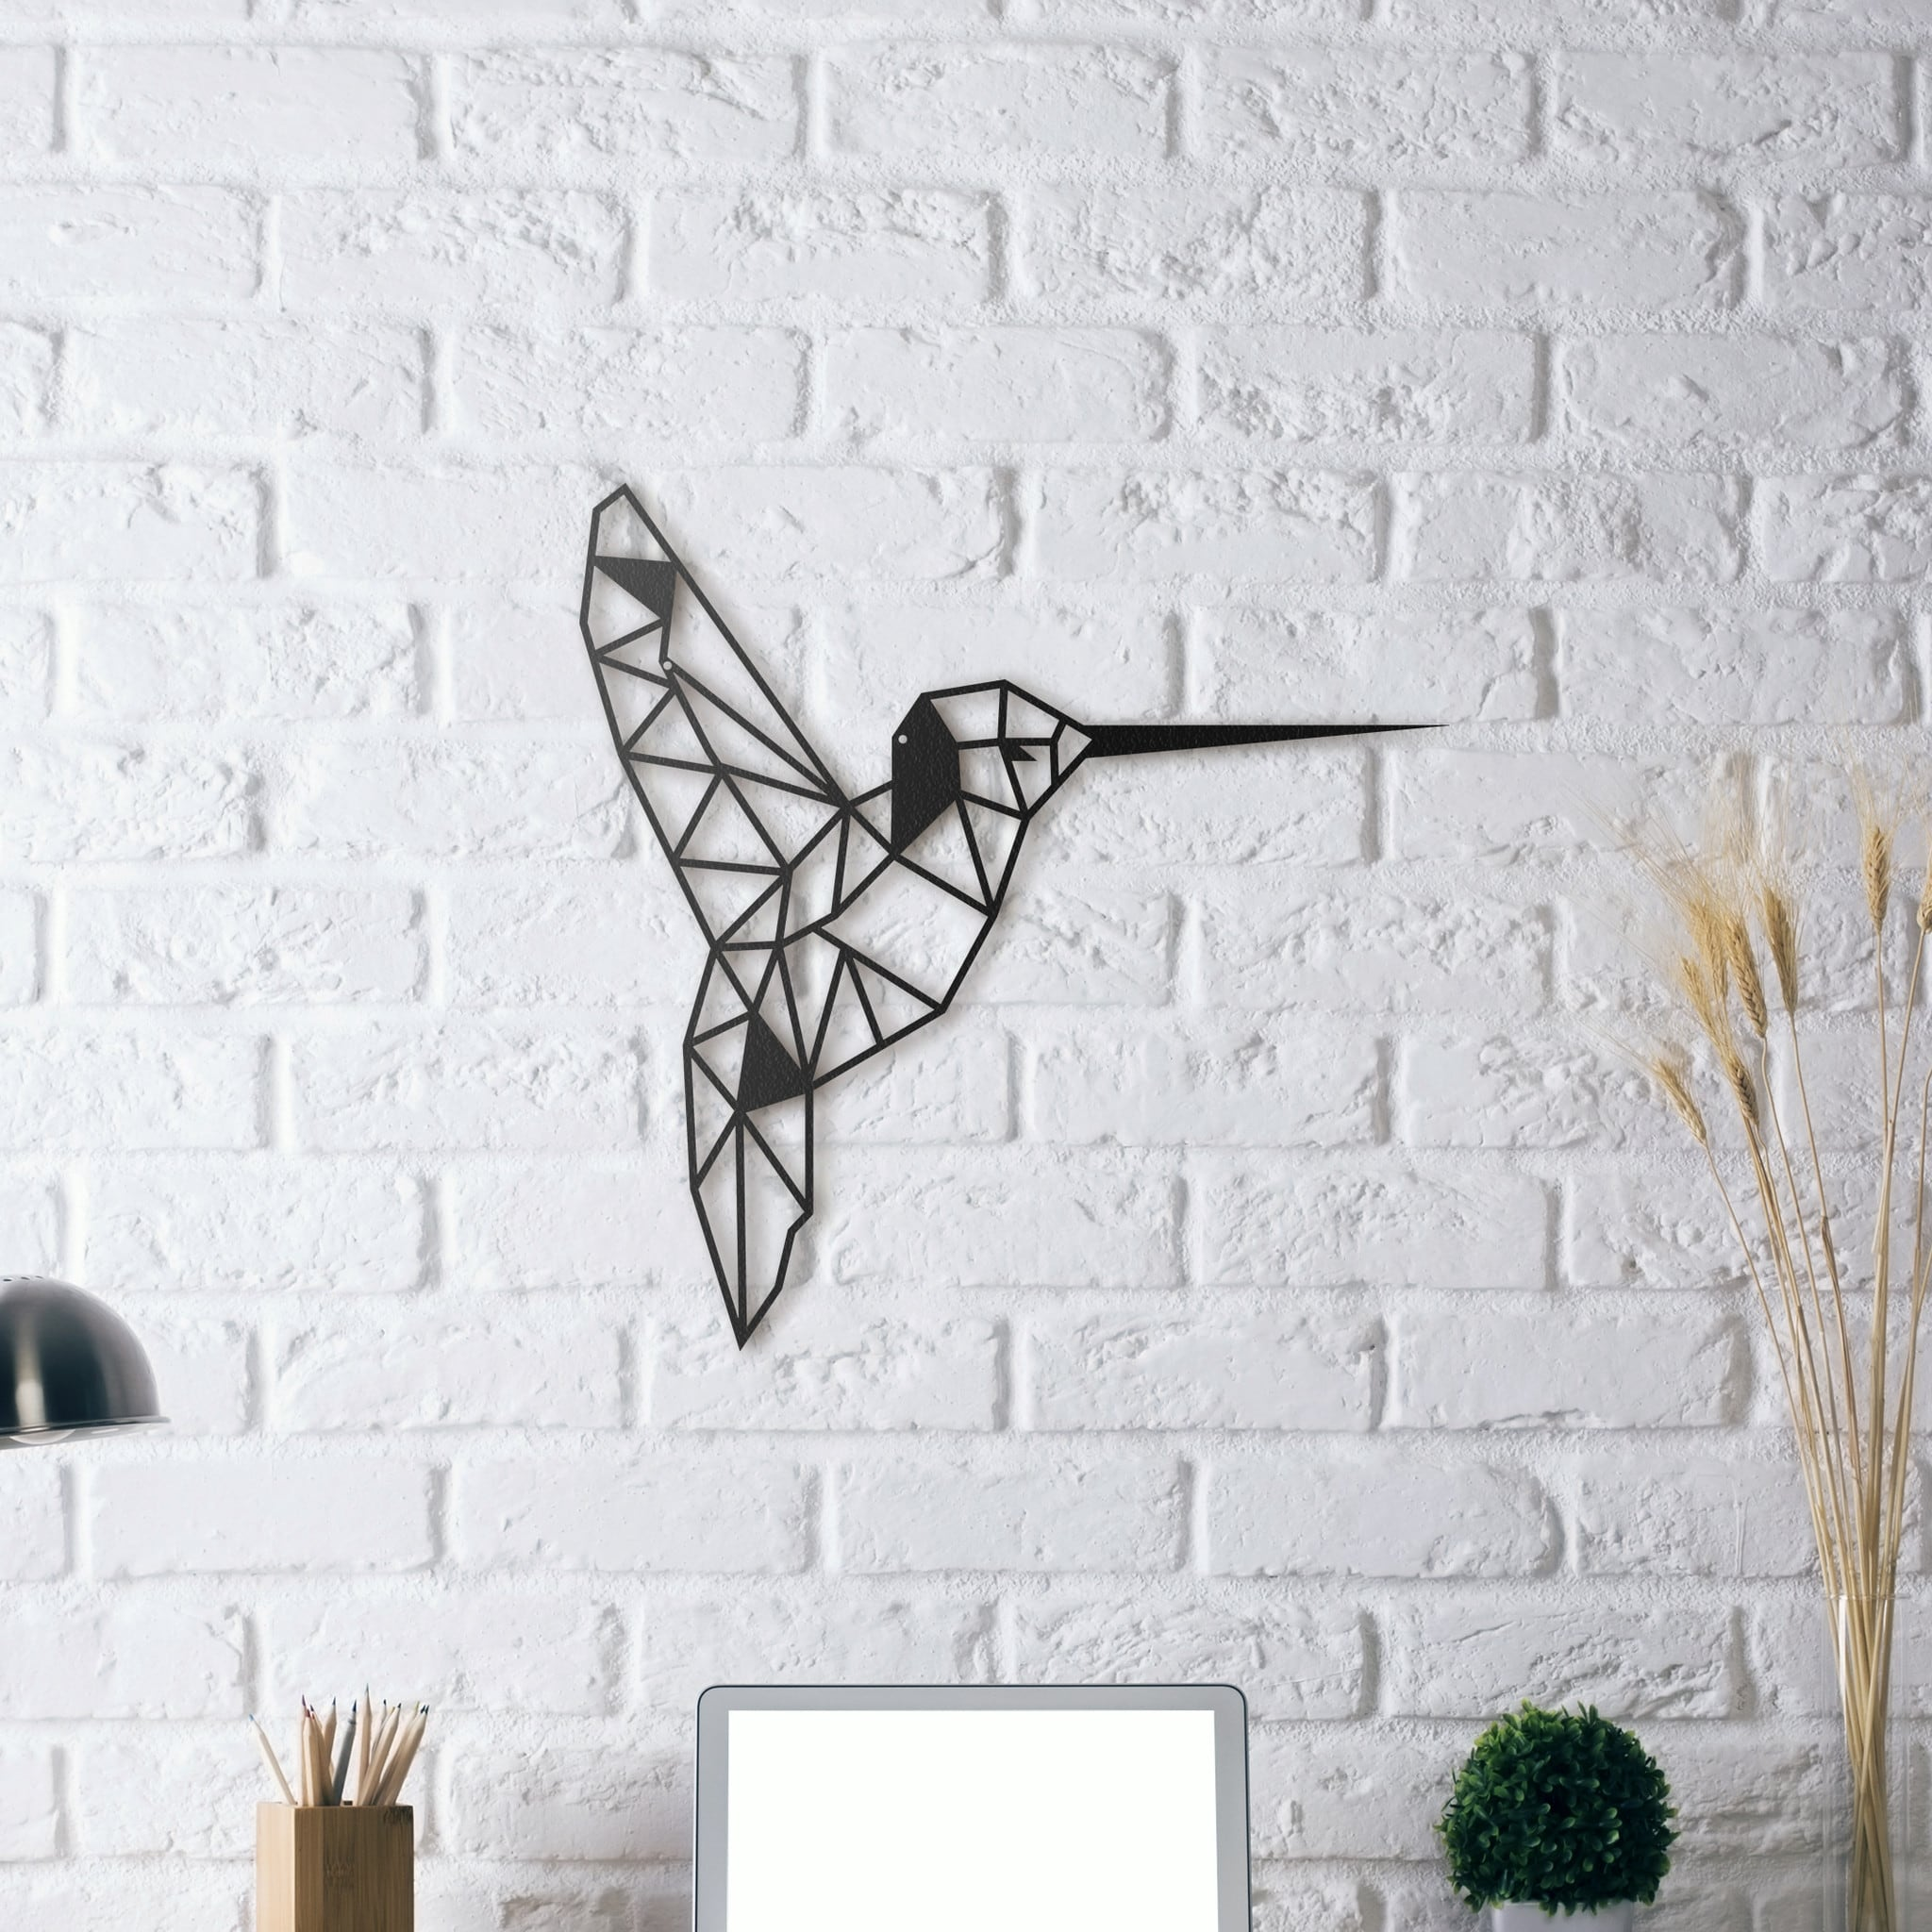 Modern metal wall decoration of a bird for a cool design